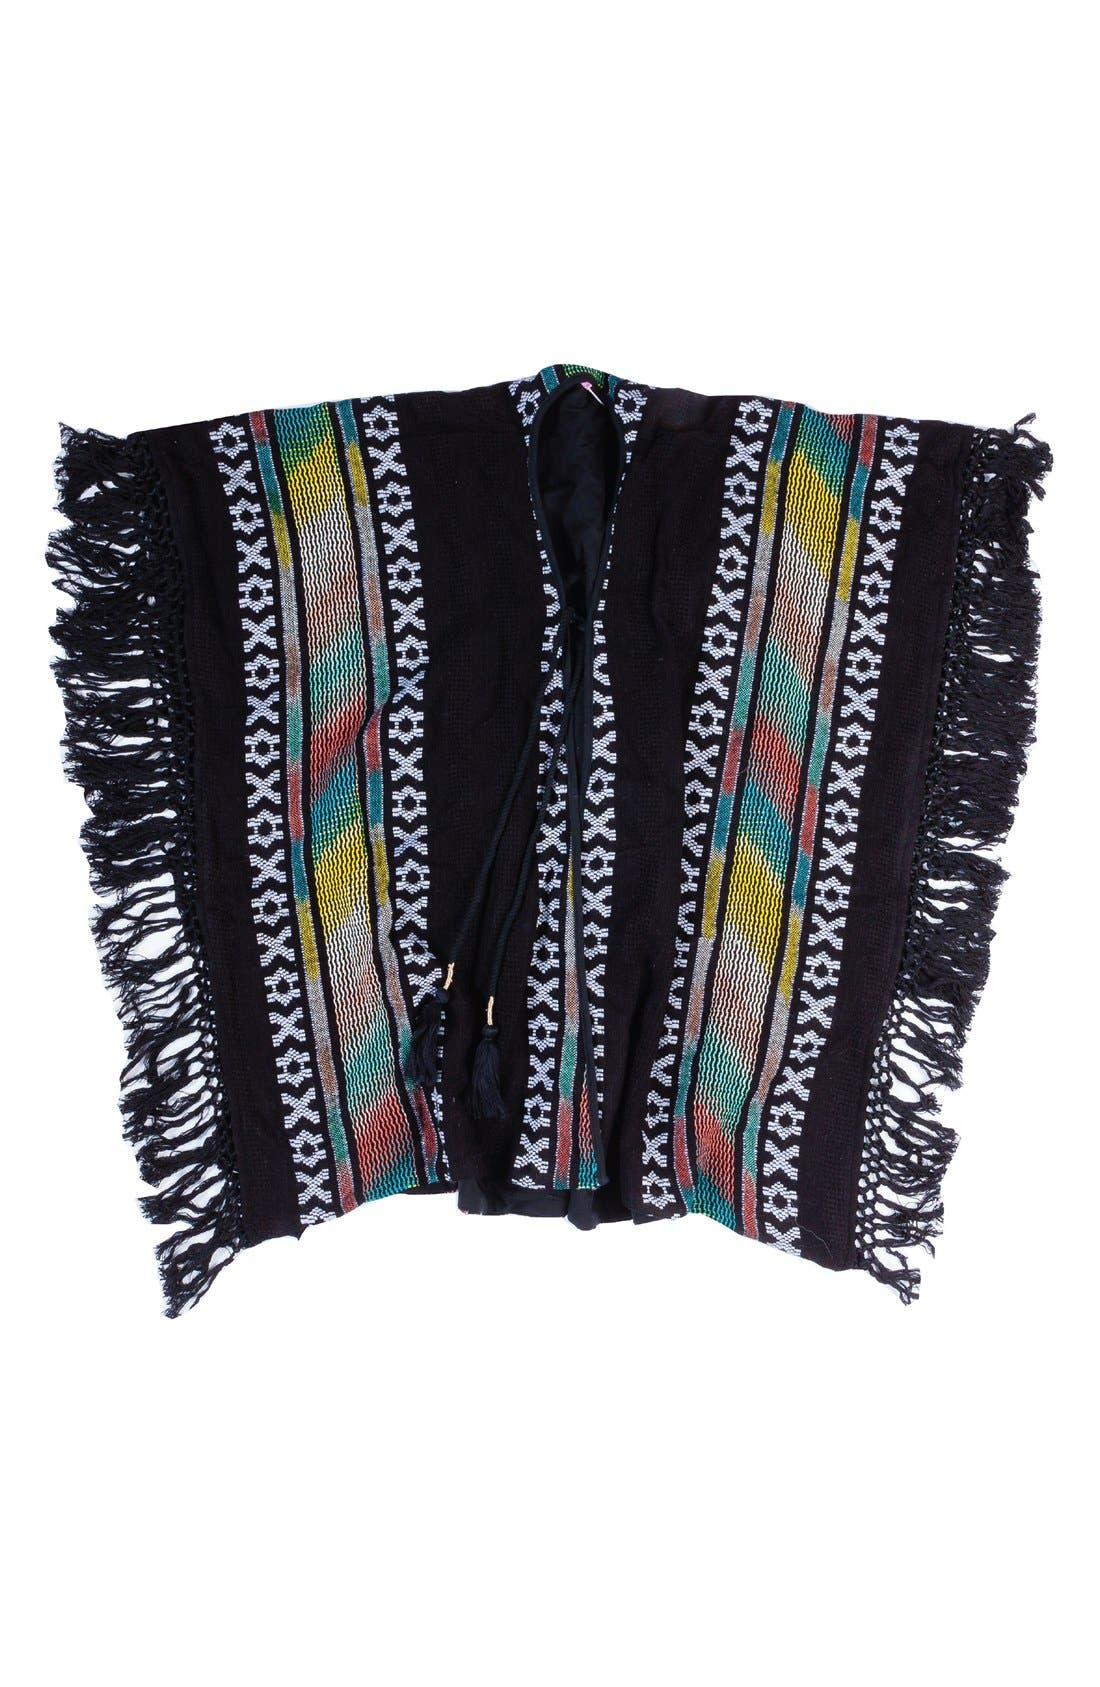 BOWIE JAMES Mohave Cover-Up Poncho